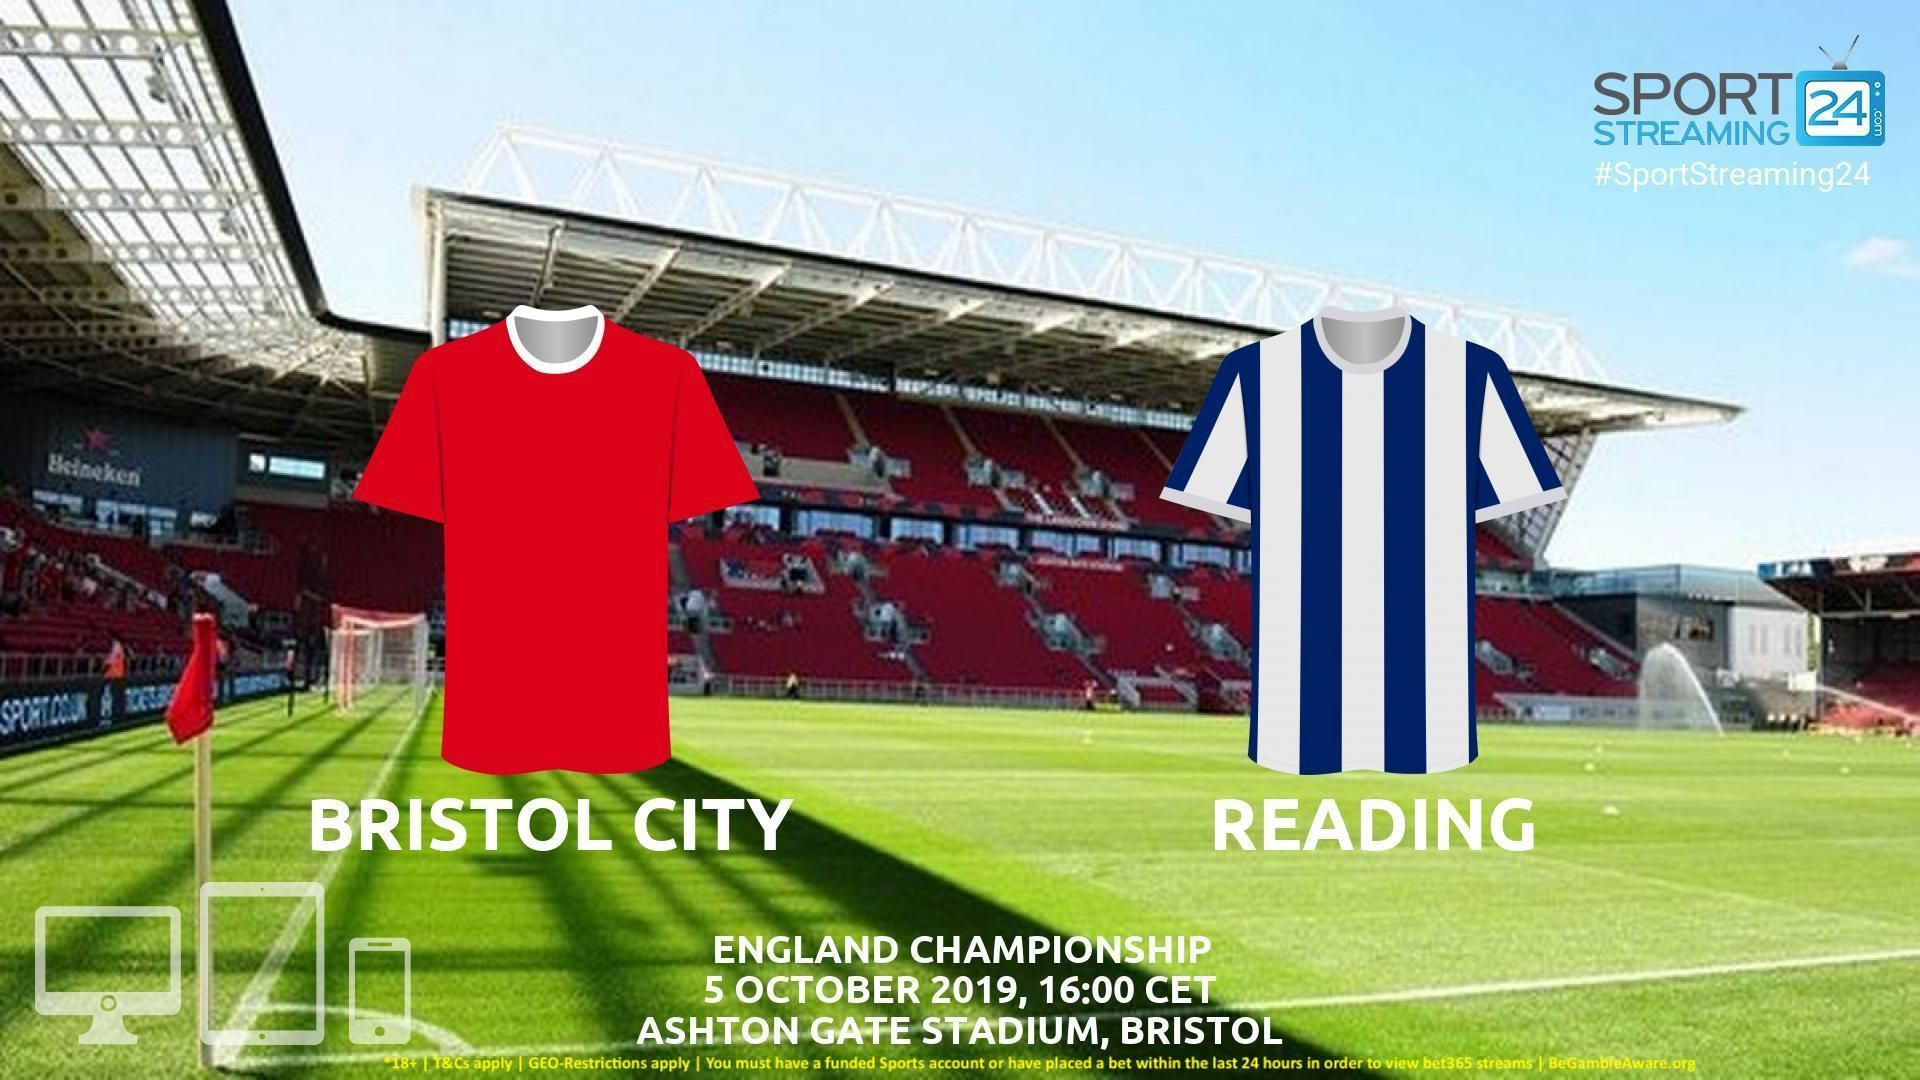 Streaming News And Match Previews Sportstreaming24 Bristol City Streaming Leganes